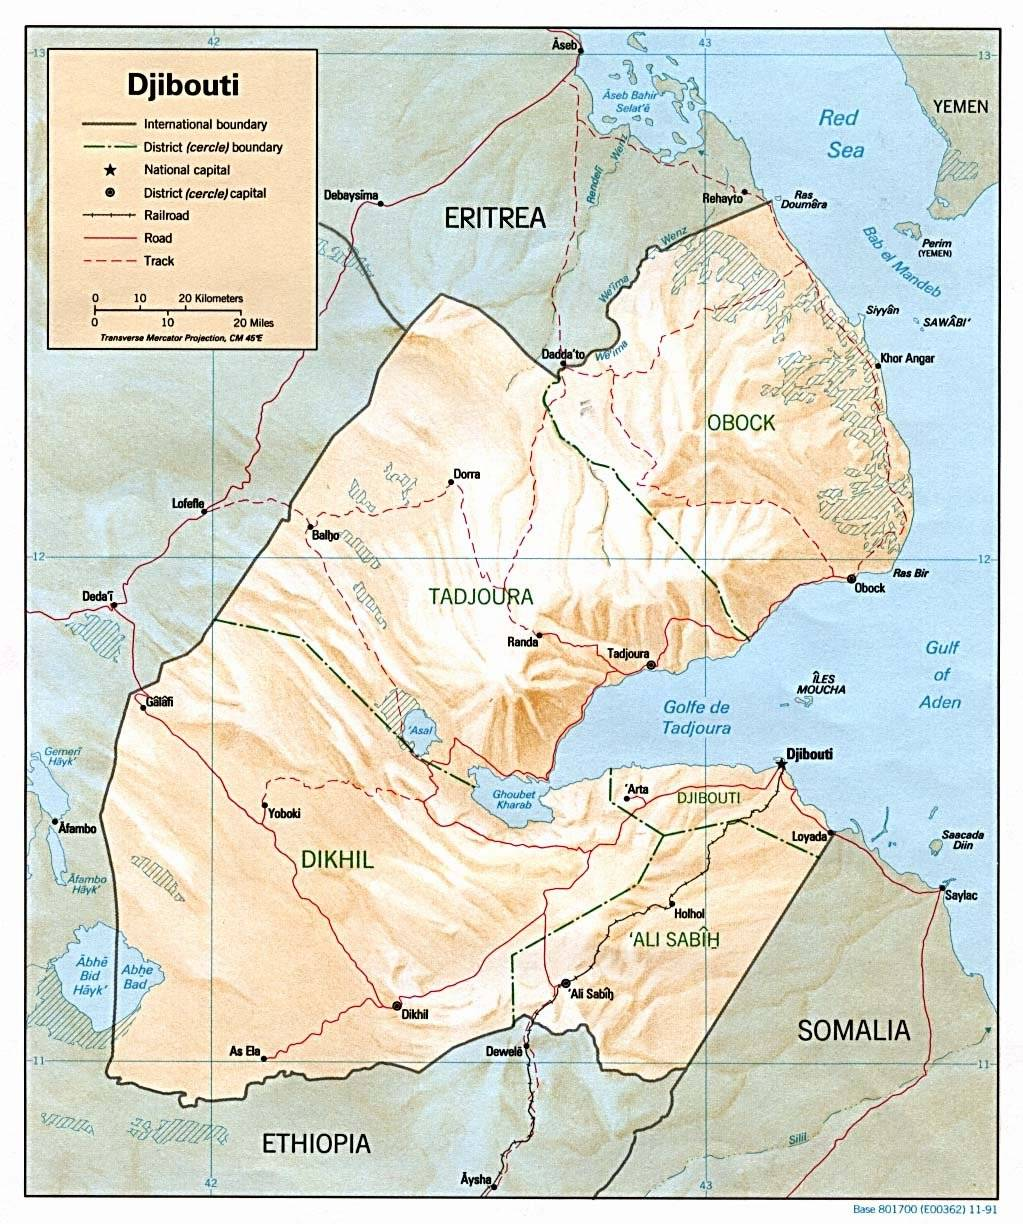 Large Djibouti City Maps for Free Download and Print | High ... on